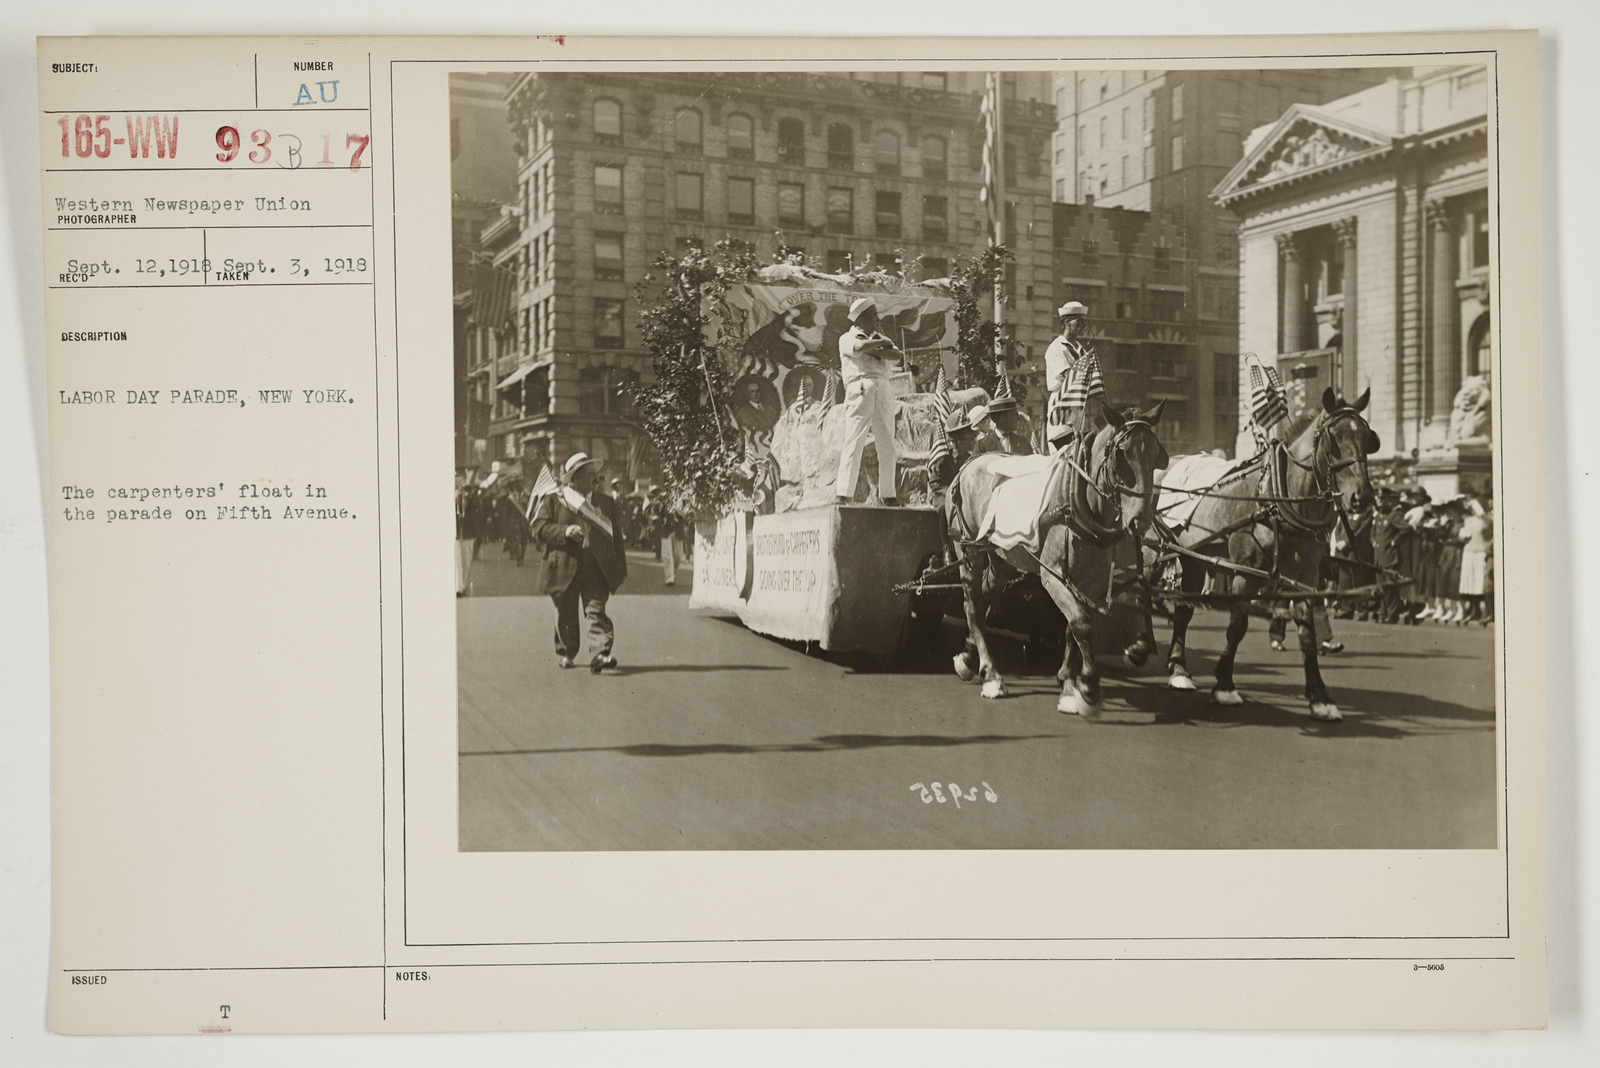 Ceremonies - Salutes and Parades - New York - Labor Day Parade, New York.  The carpenters' float in the parade on Fifth Avenue